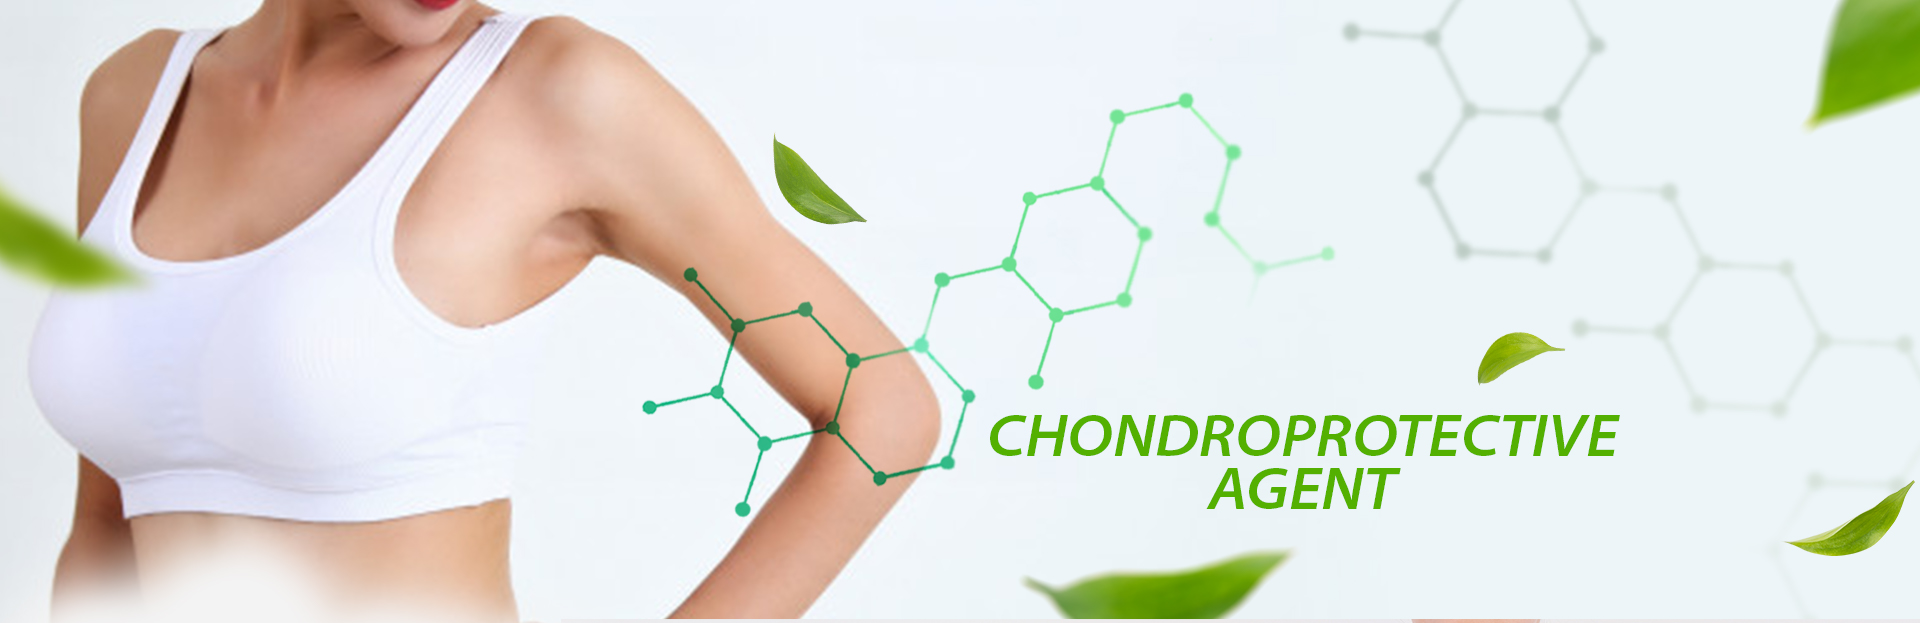 CHONDROPROTECTIVE AGENT